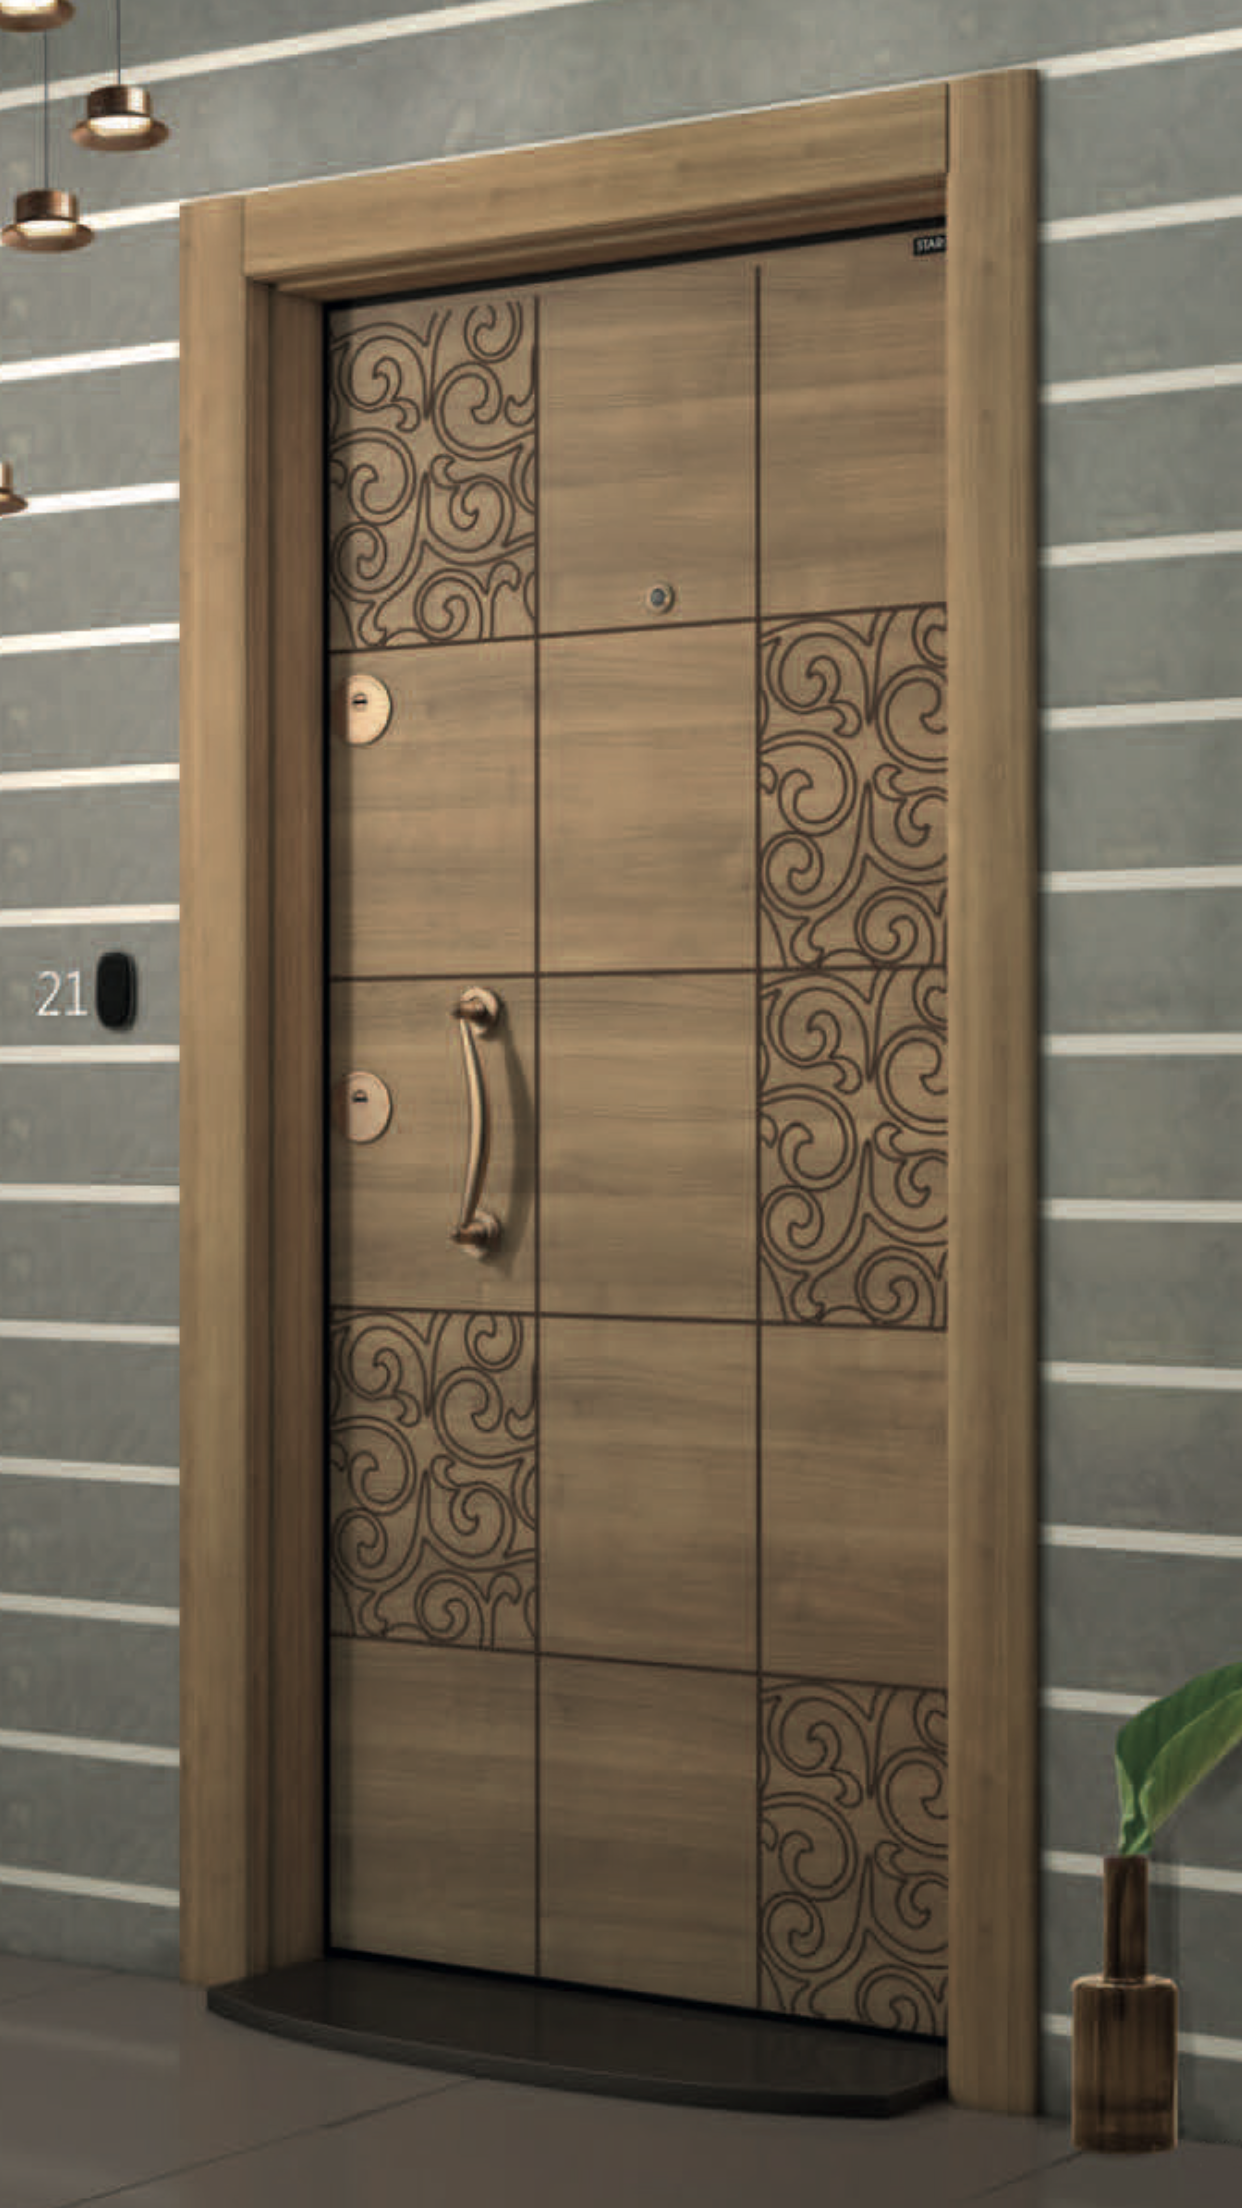 Pin By Bernd Fischer On Digital Wooden Front Door Design Wooden Main Door Design Door Design Interior